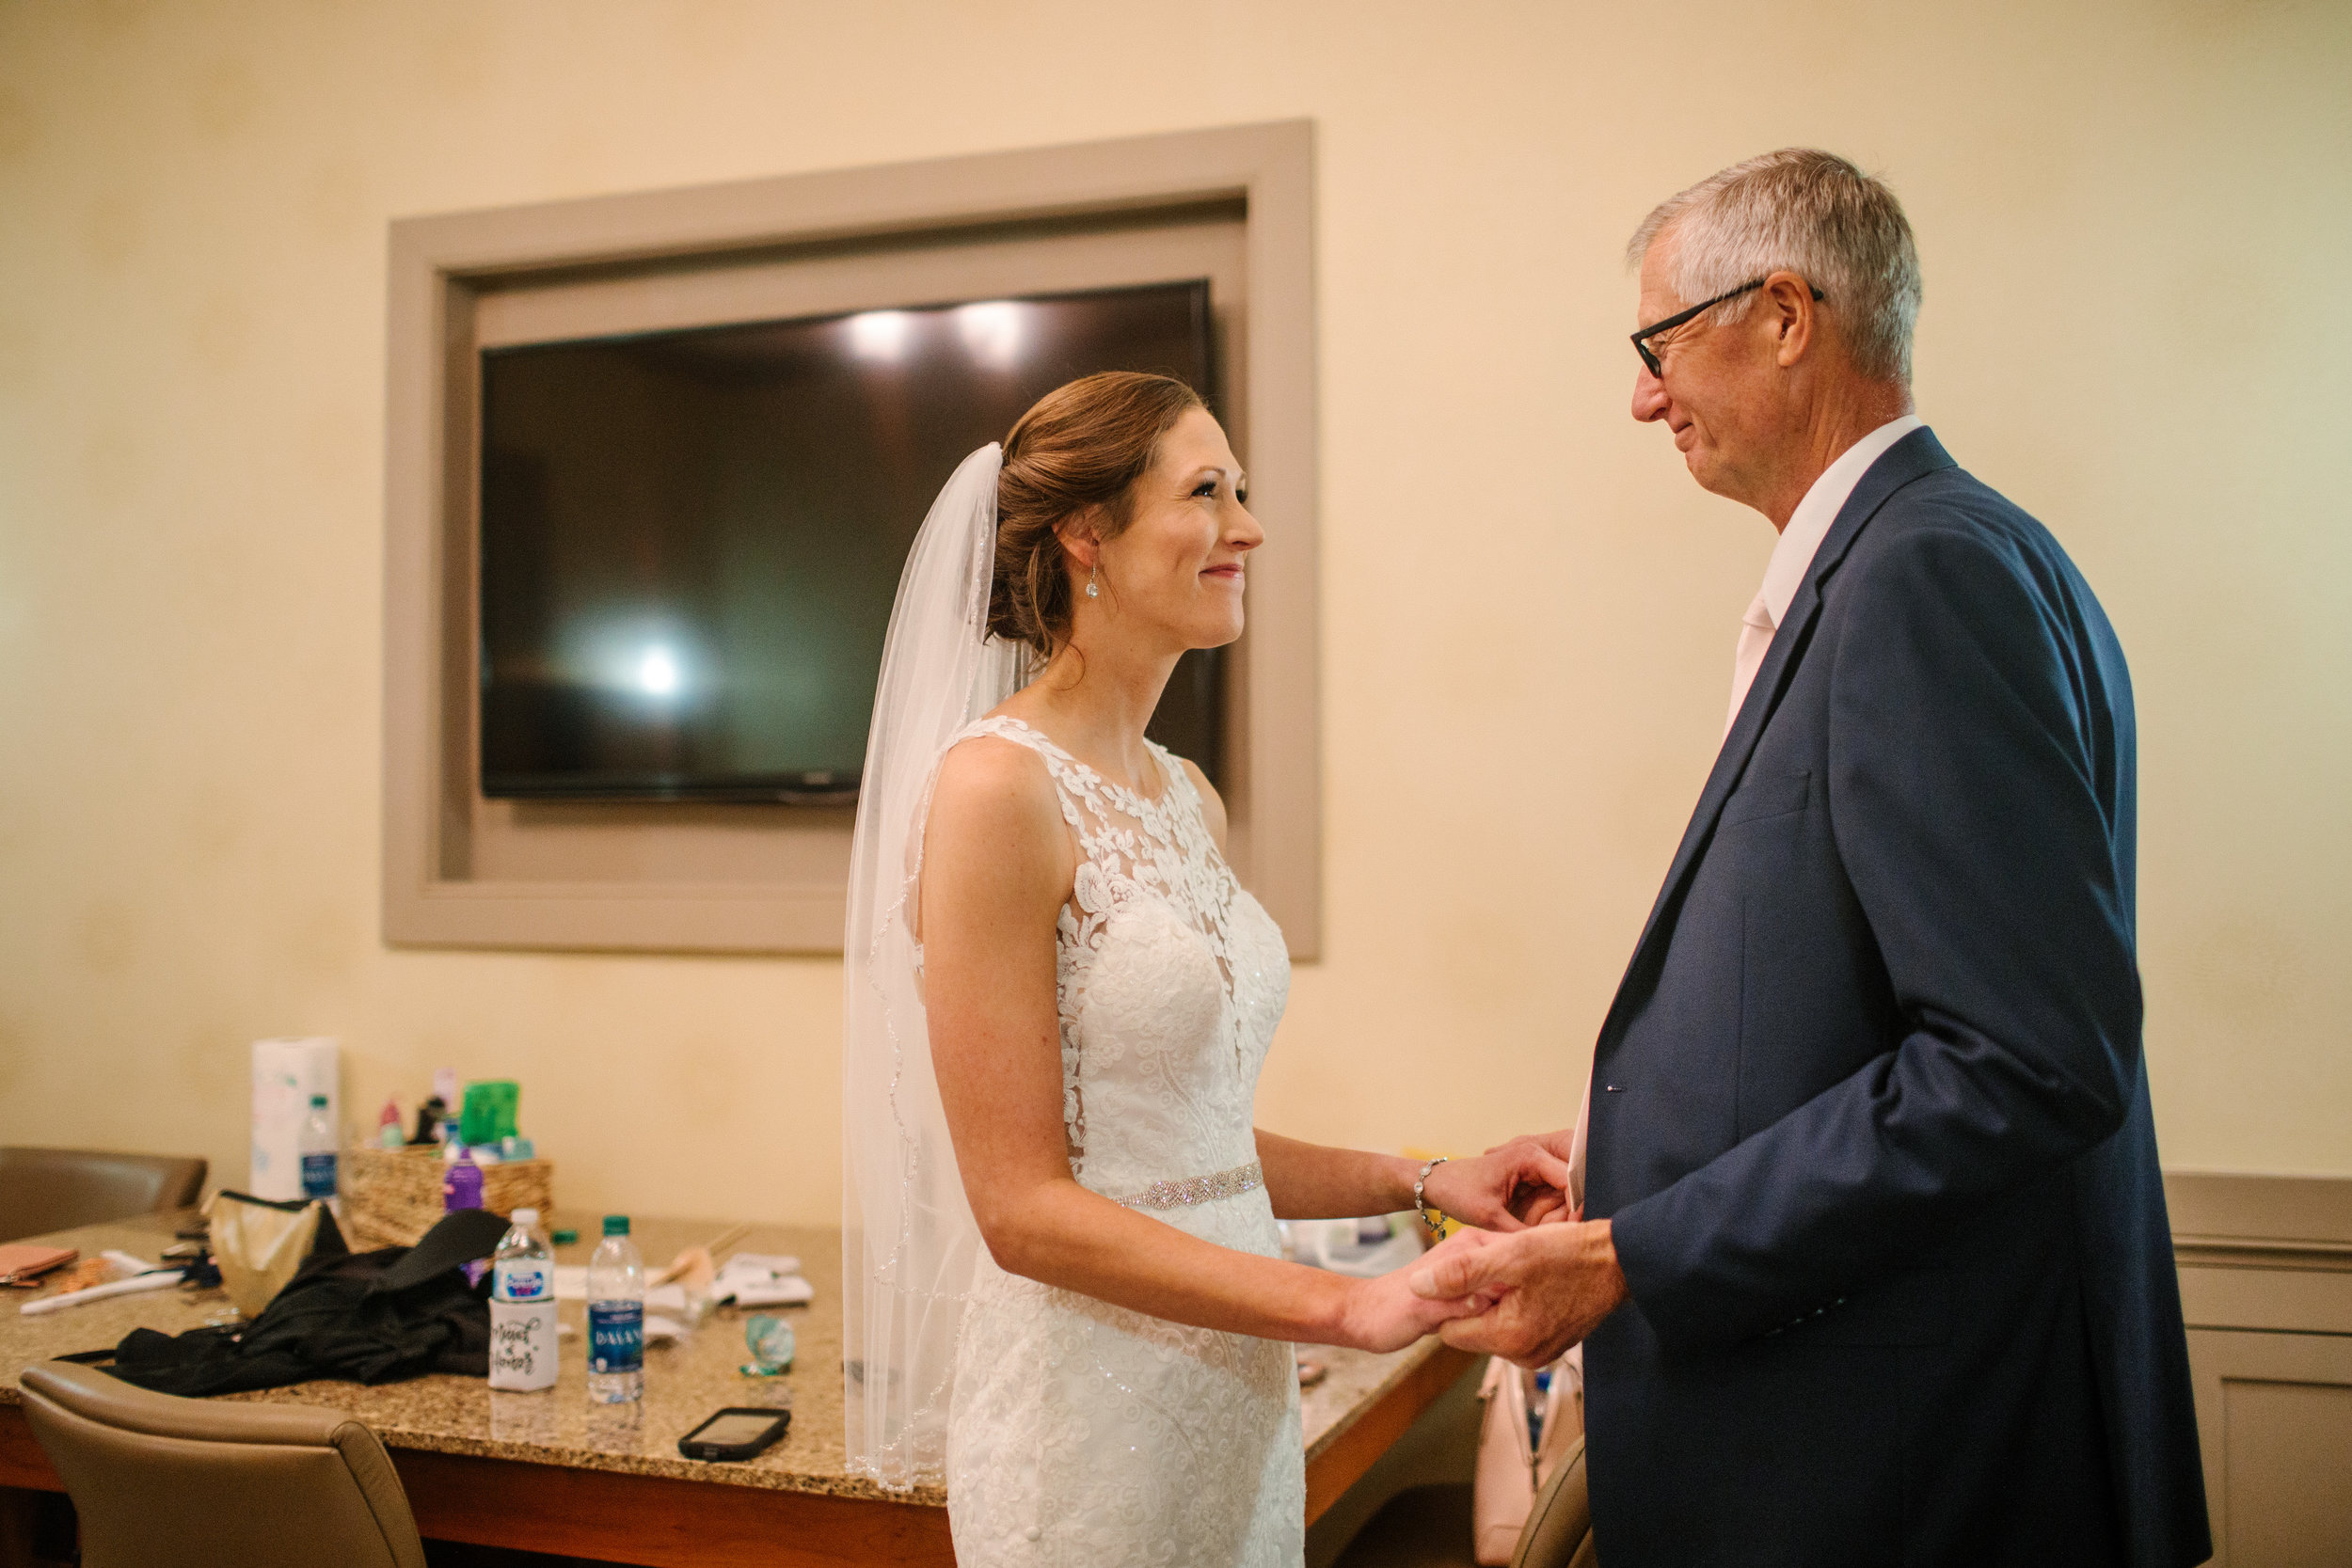 nicole_kyle_west_des_moines_iowa_wedding_photographers_17.jpg